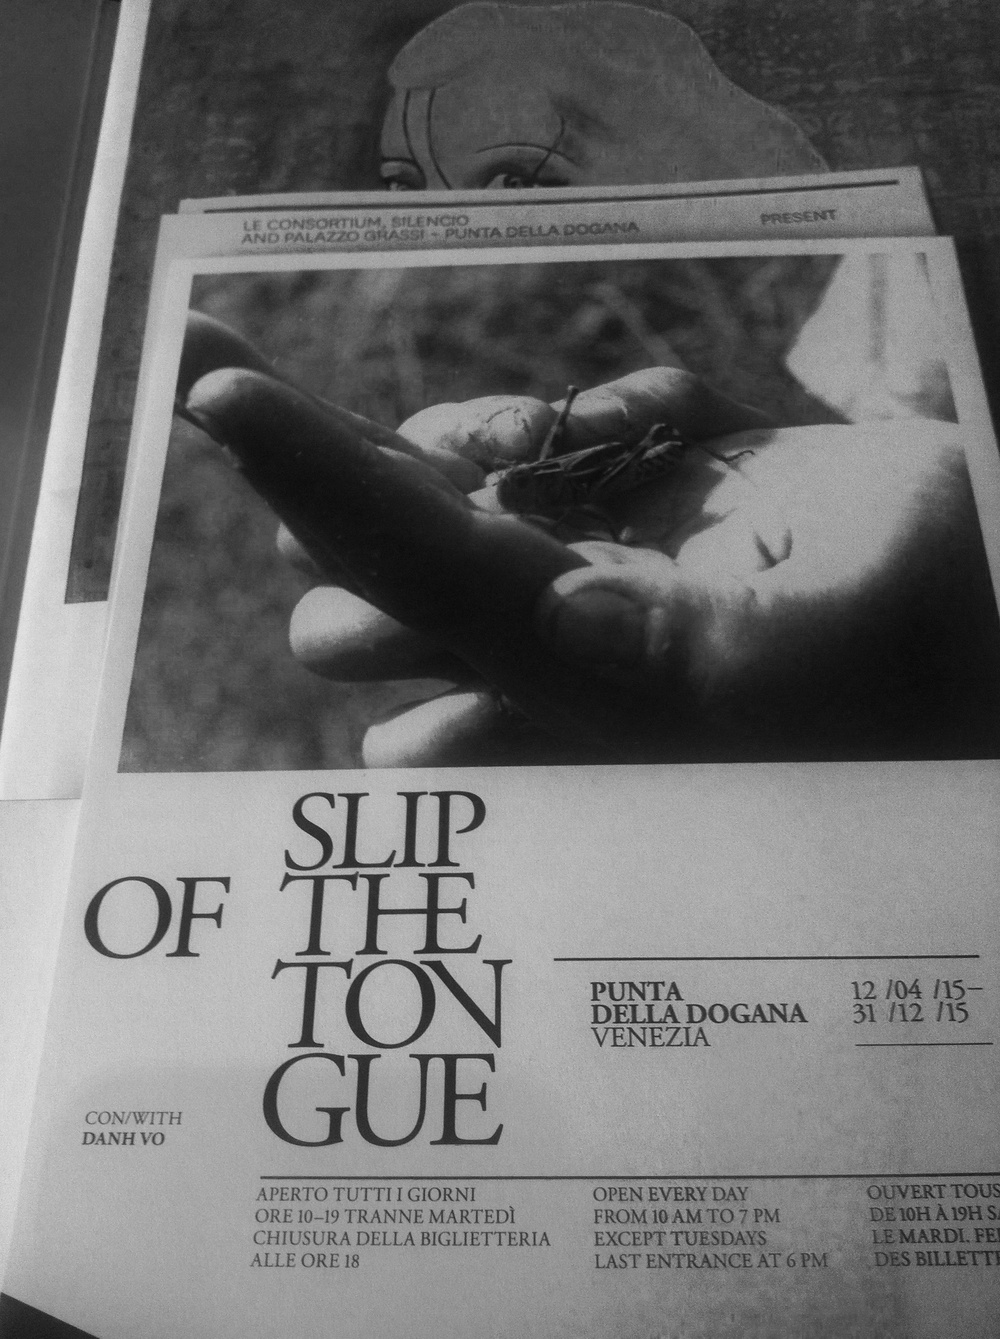 Slip of the Tongue (from the press kit)